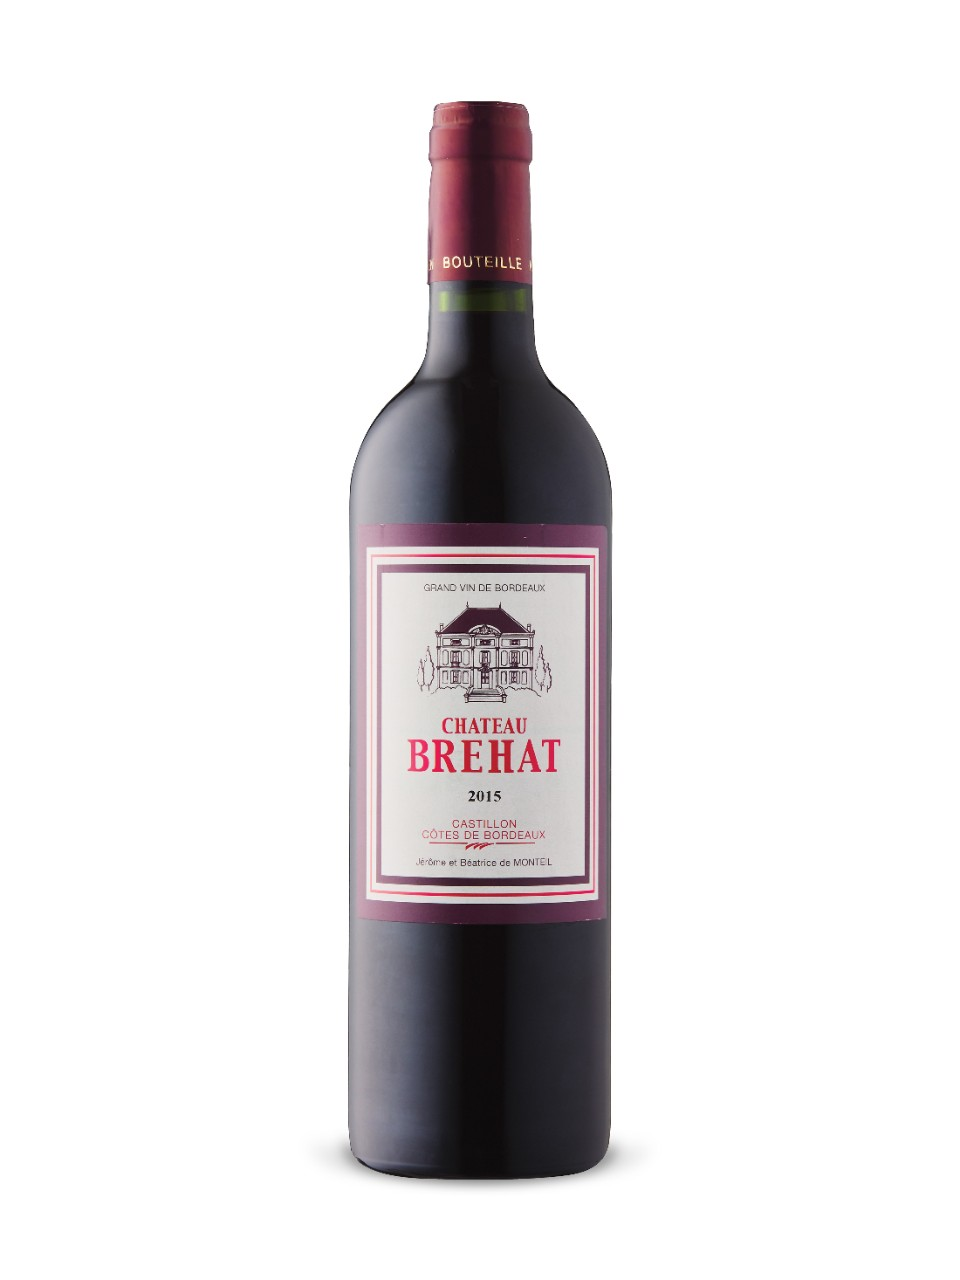 Château Bréhat 2015 from LCBO